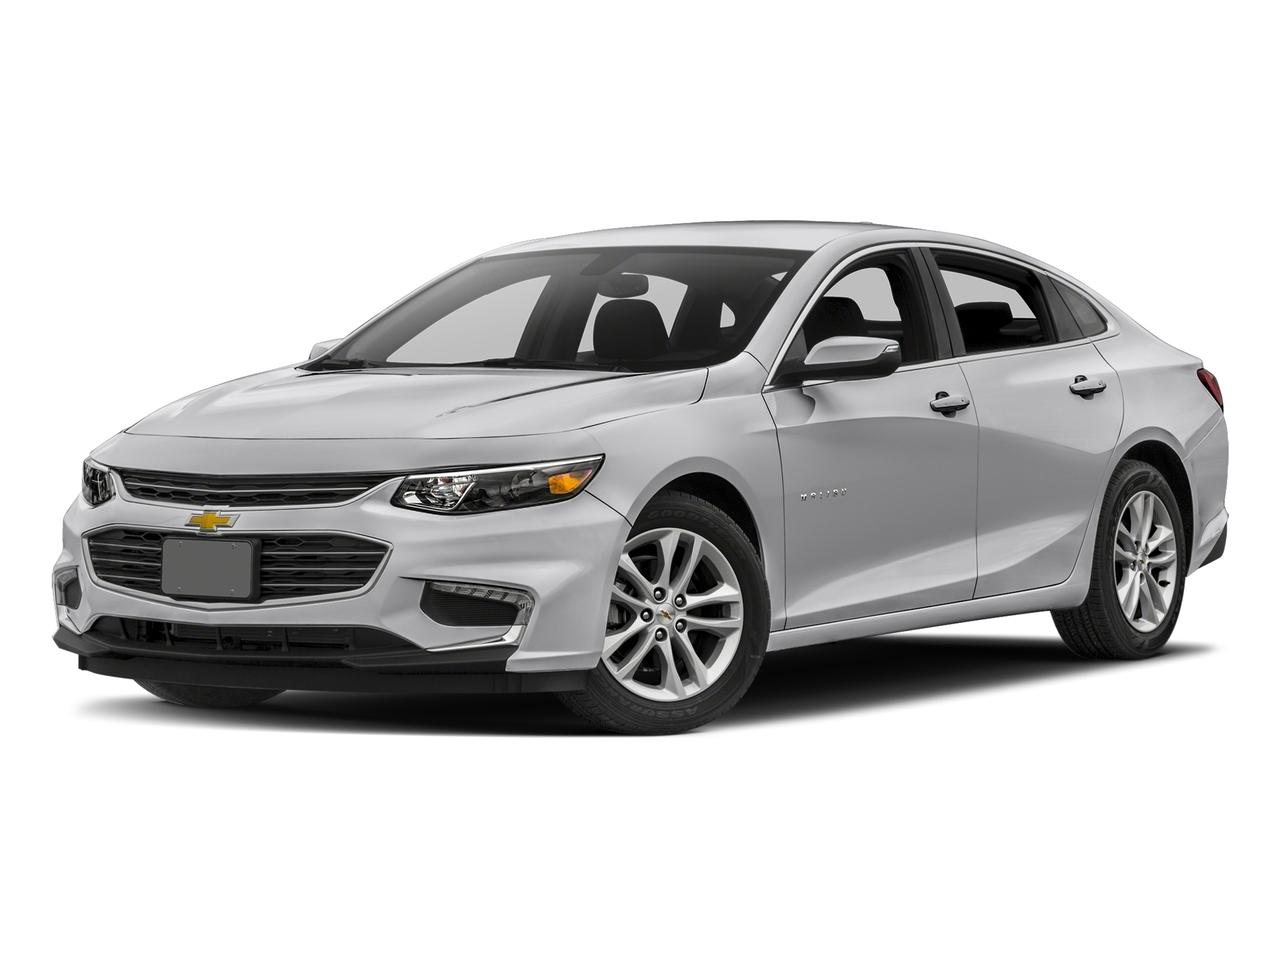 2018 Chevrolet Malibu Vehicle Photo in Odessa, TX 79762